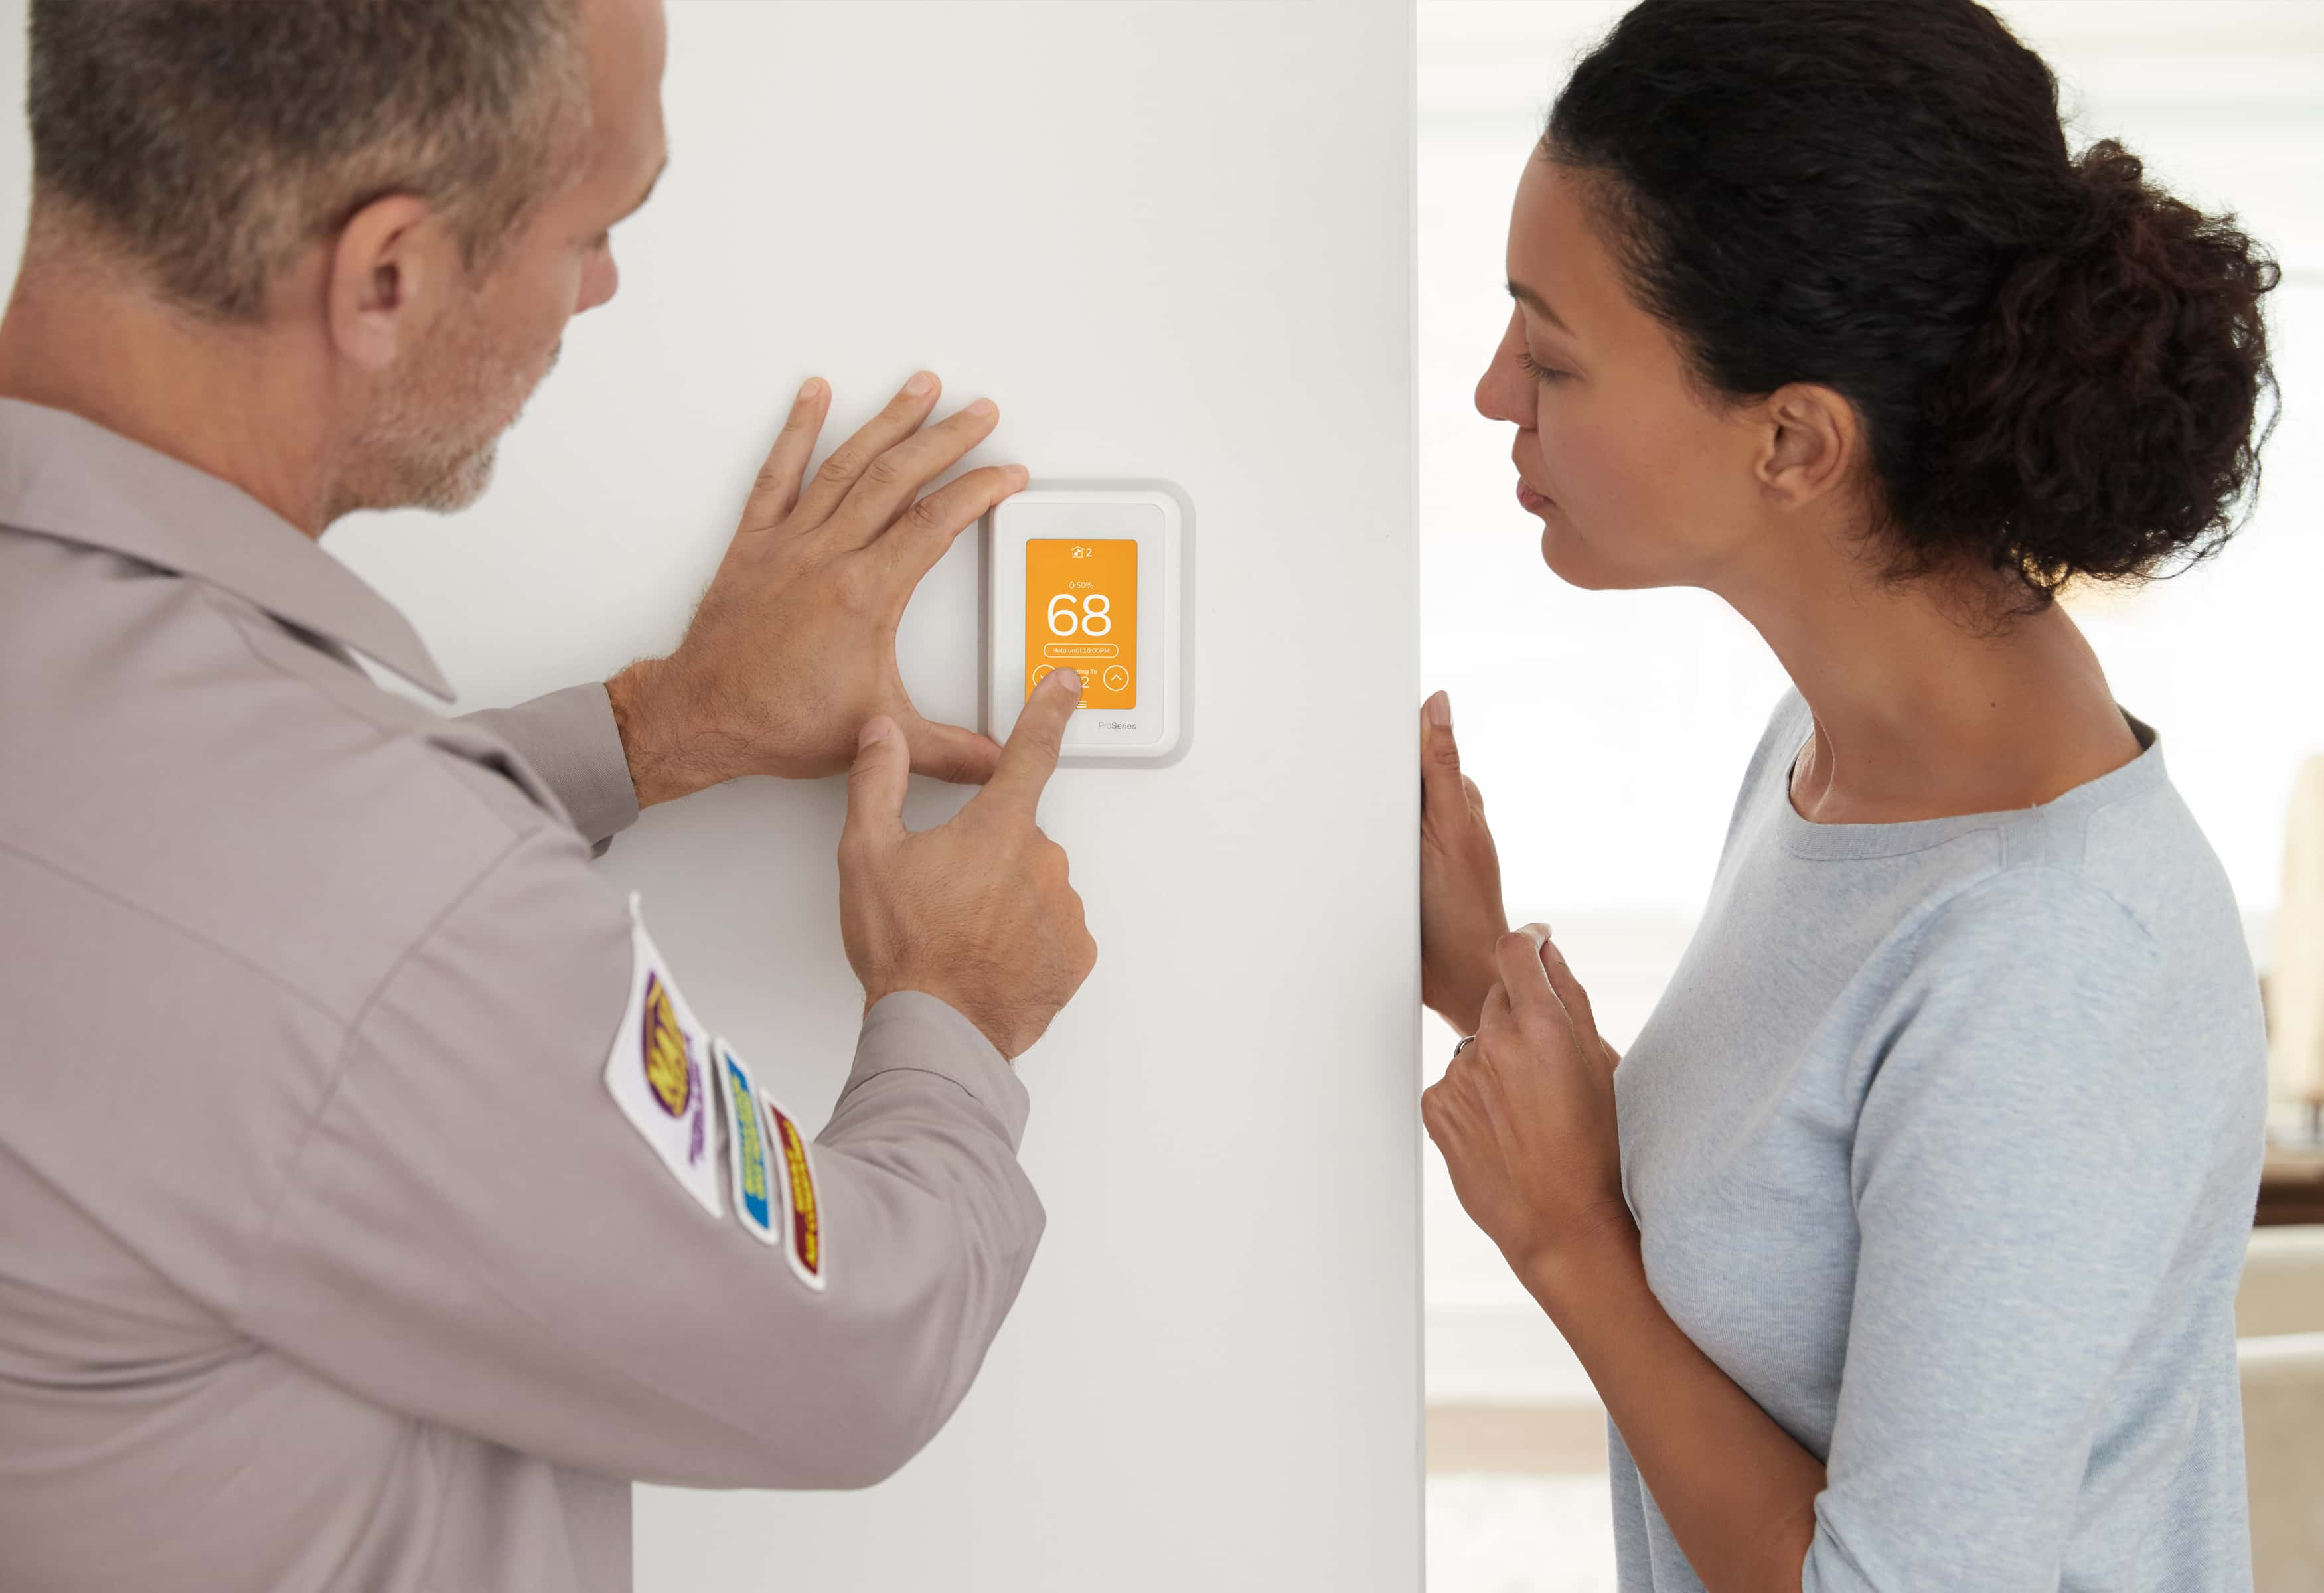 Contractor installing smart home energy product